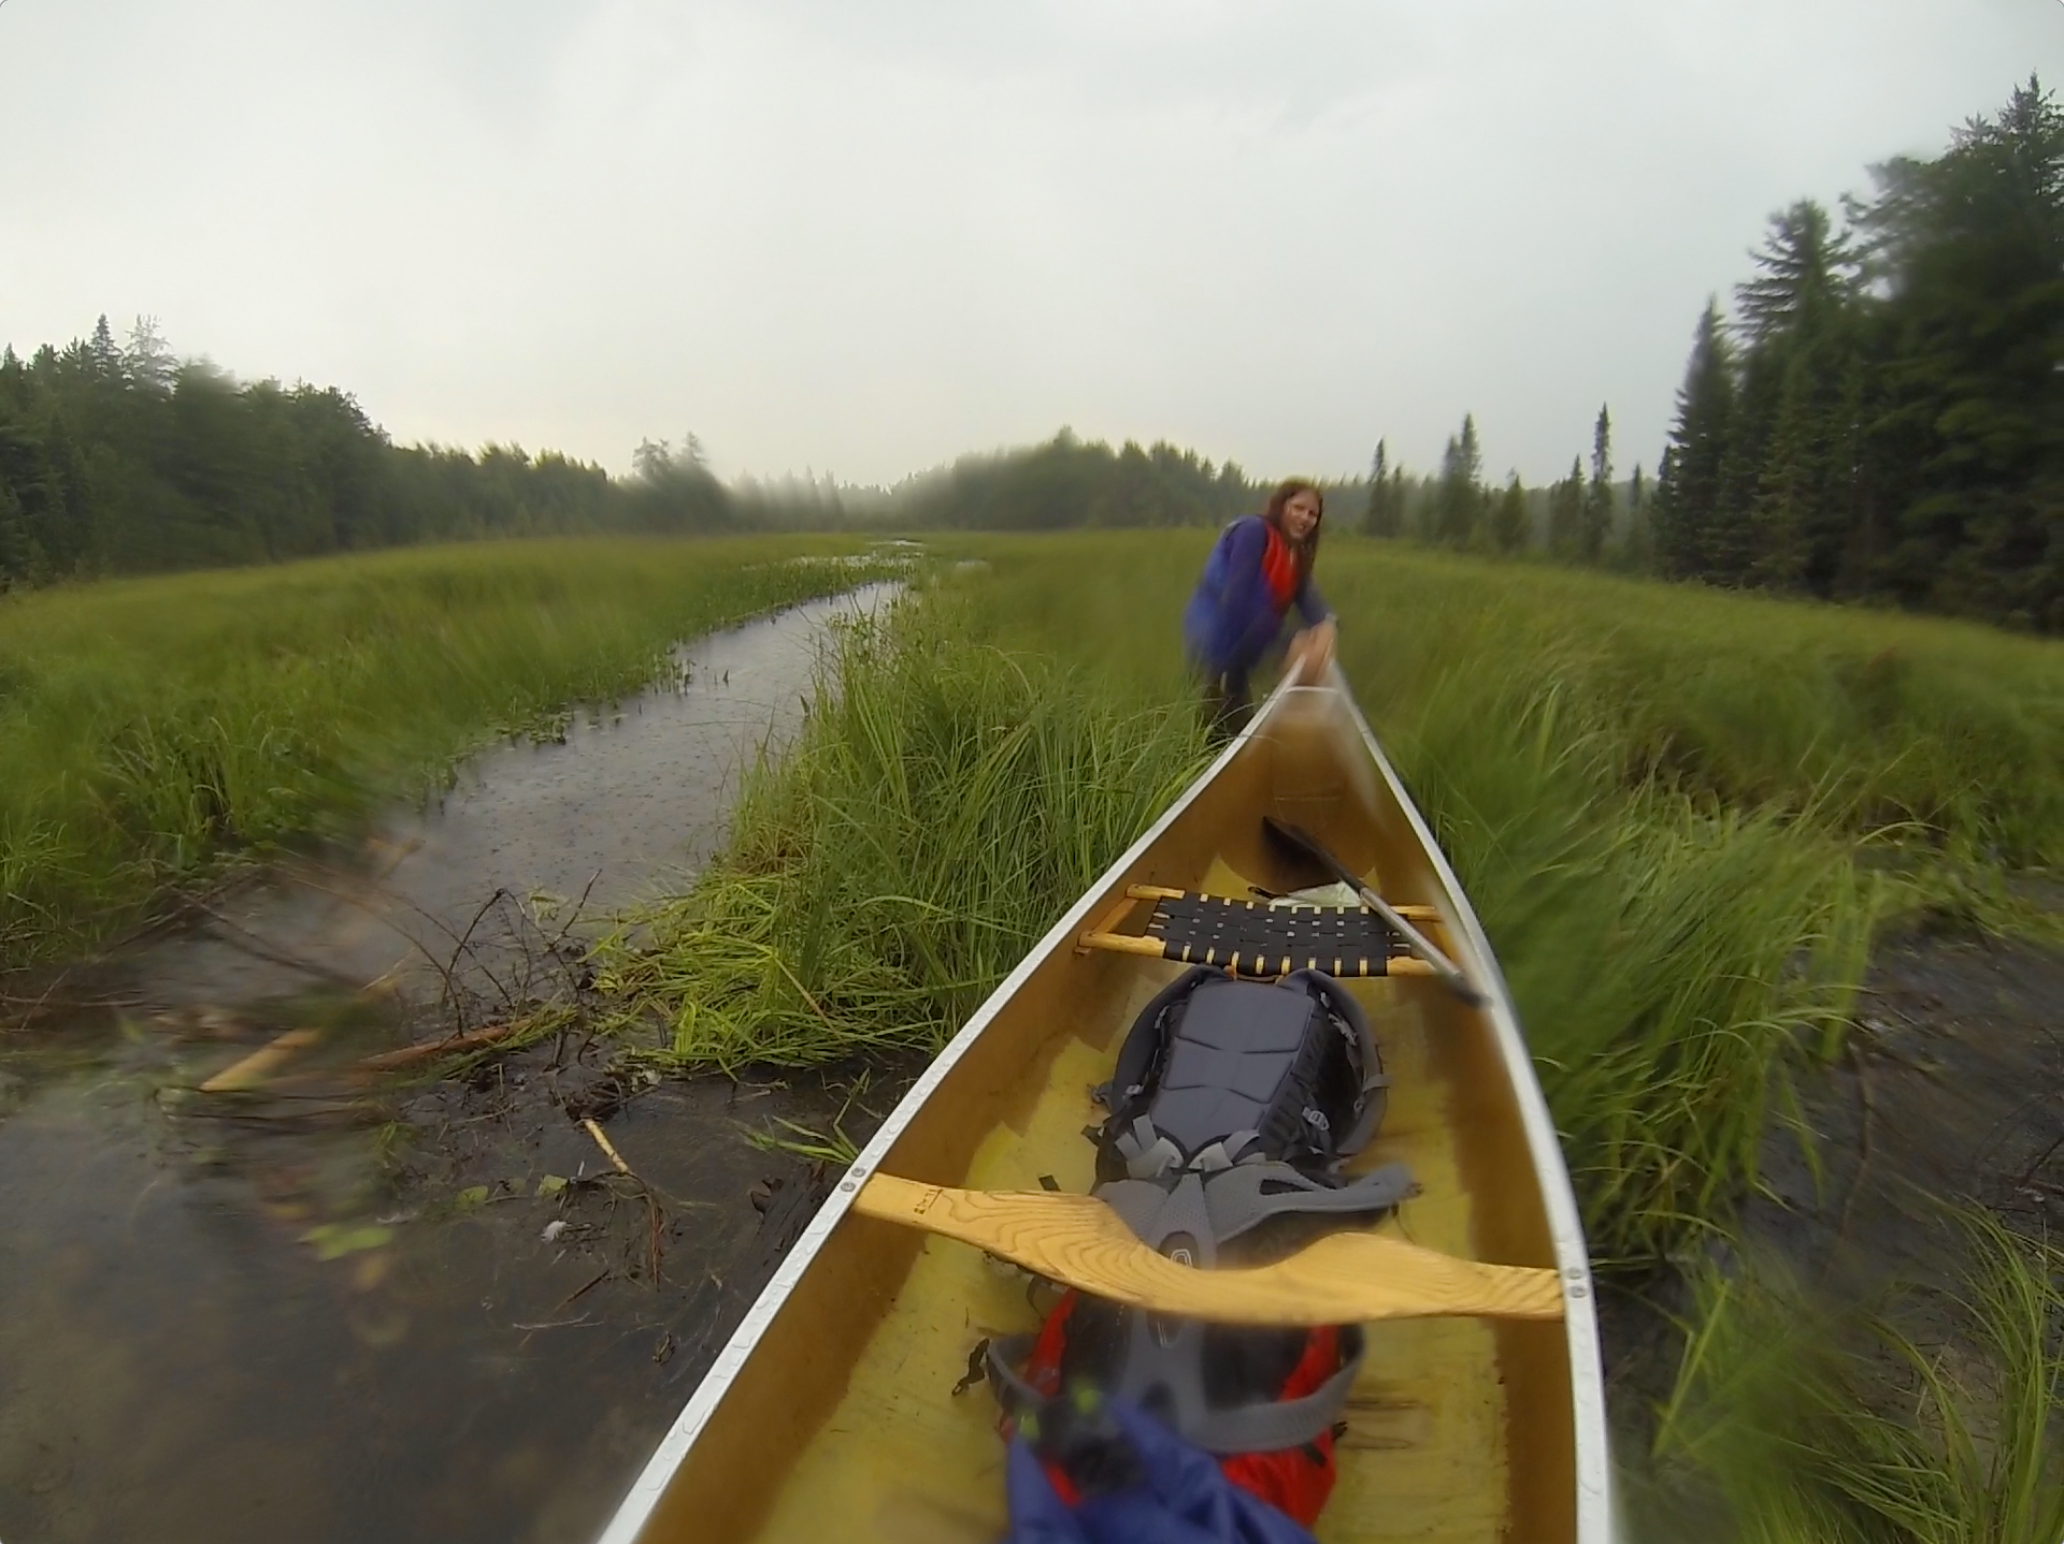 Janneke pulling the canoe past one of the many beaver dams along the way...